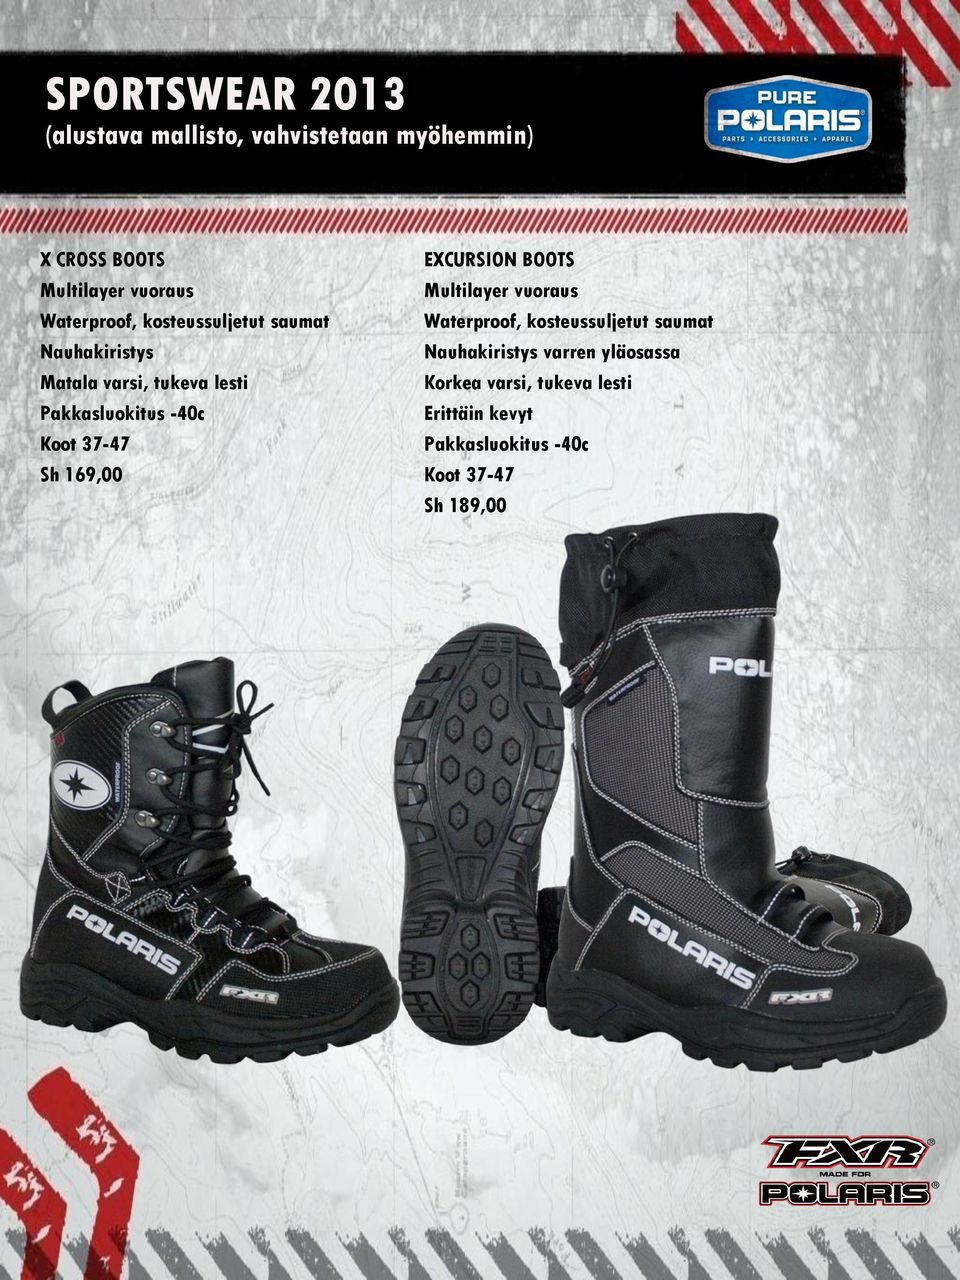 Koot 37-47 Sh 169,00 EXCURSION BOOTS Multilayer vuoraus Waterproof, kosteussuljetut saumat